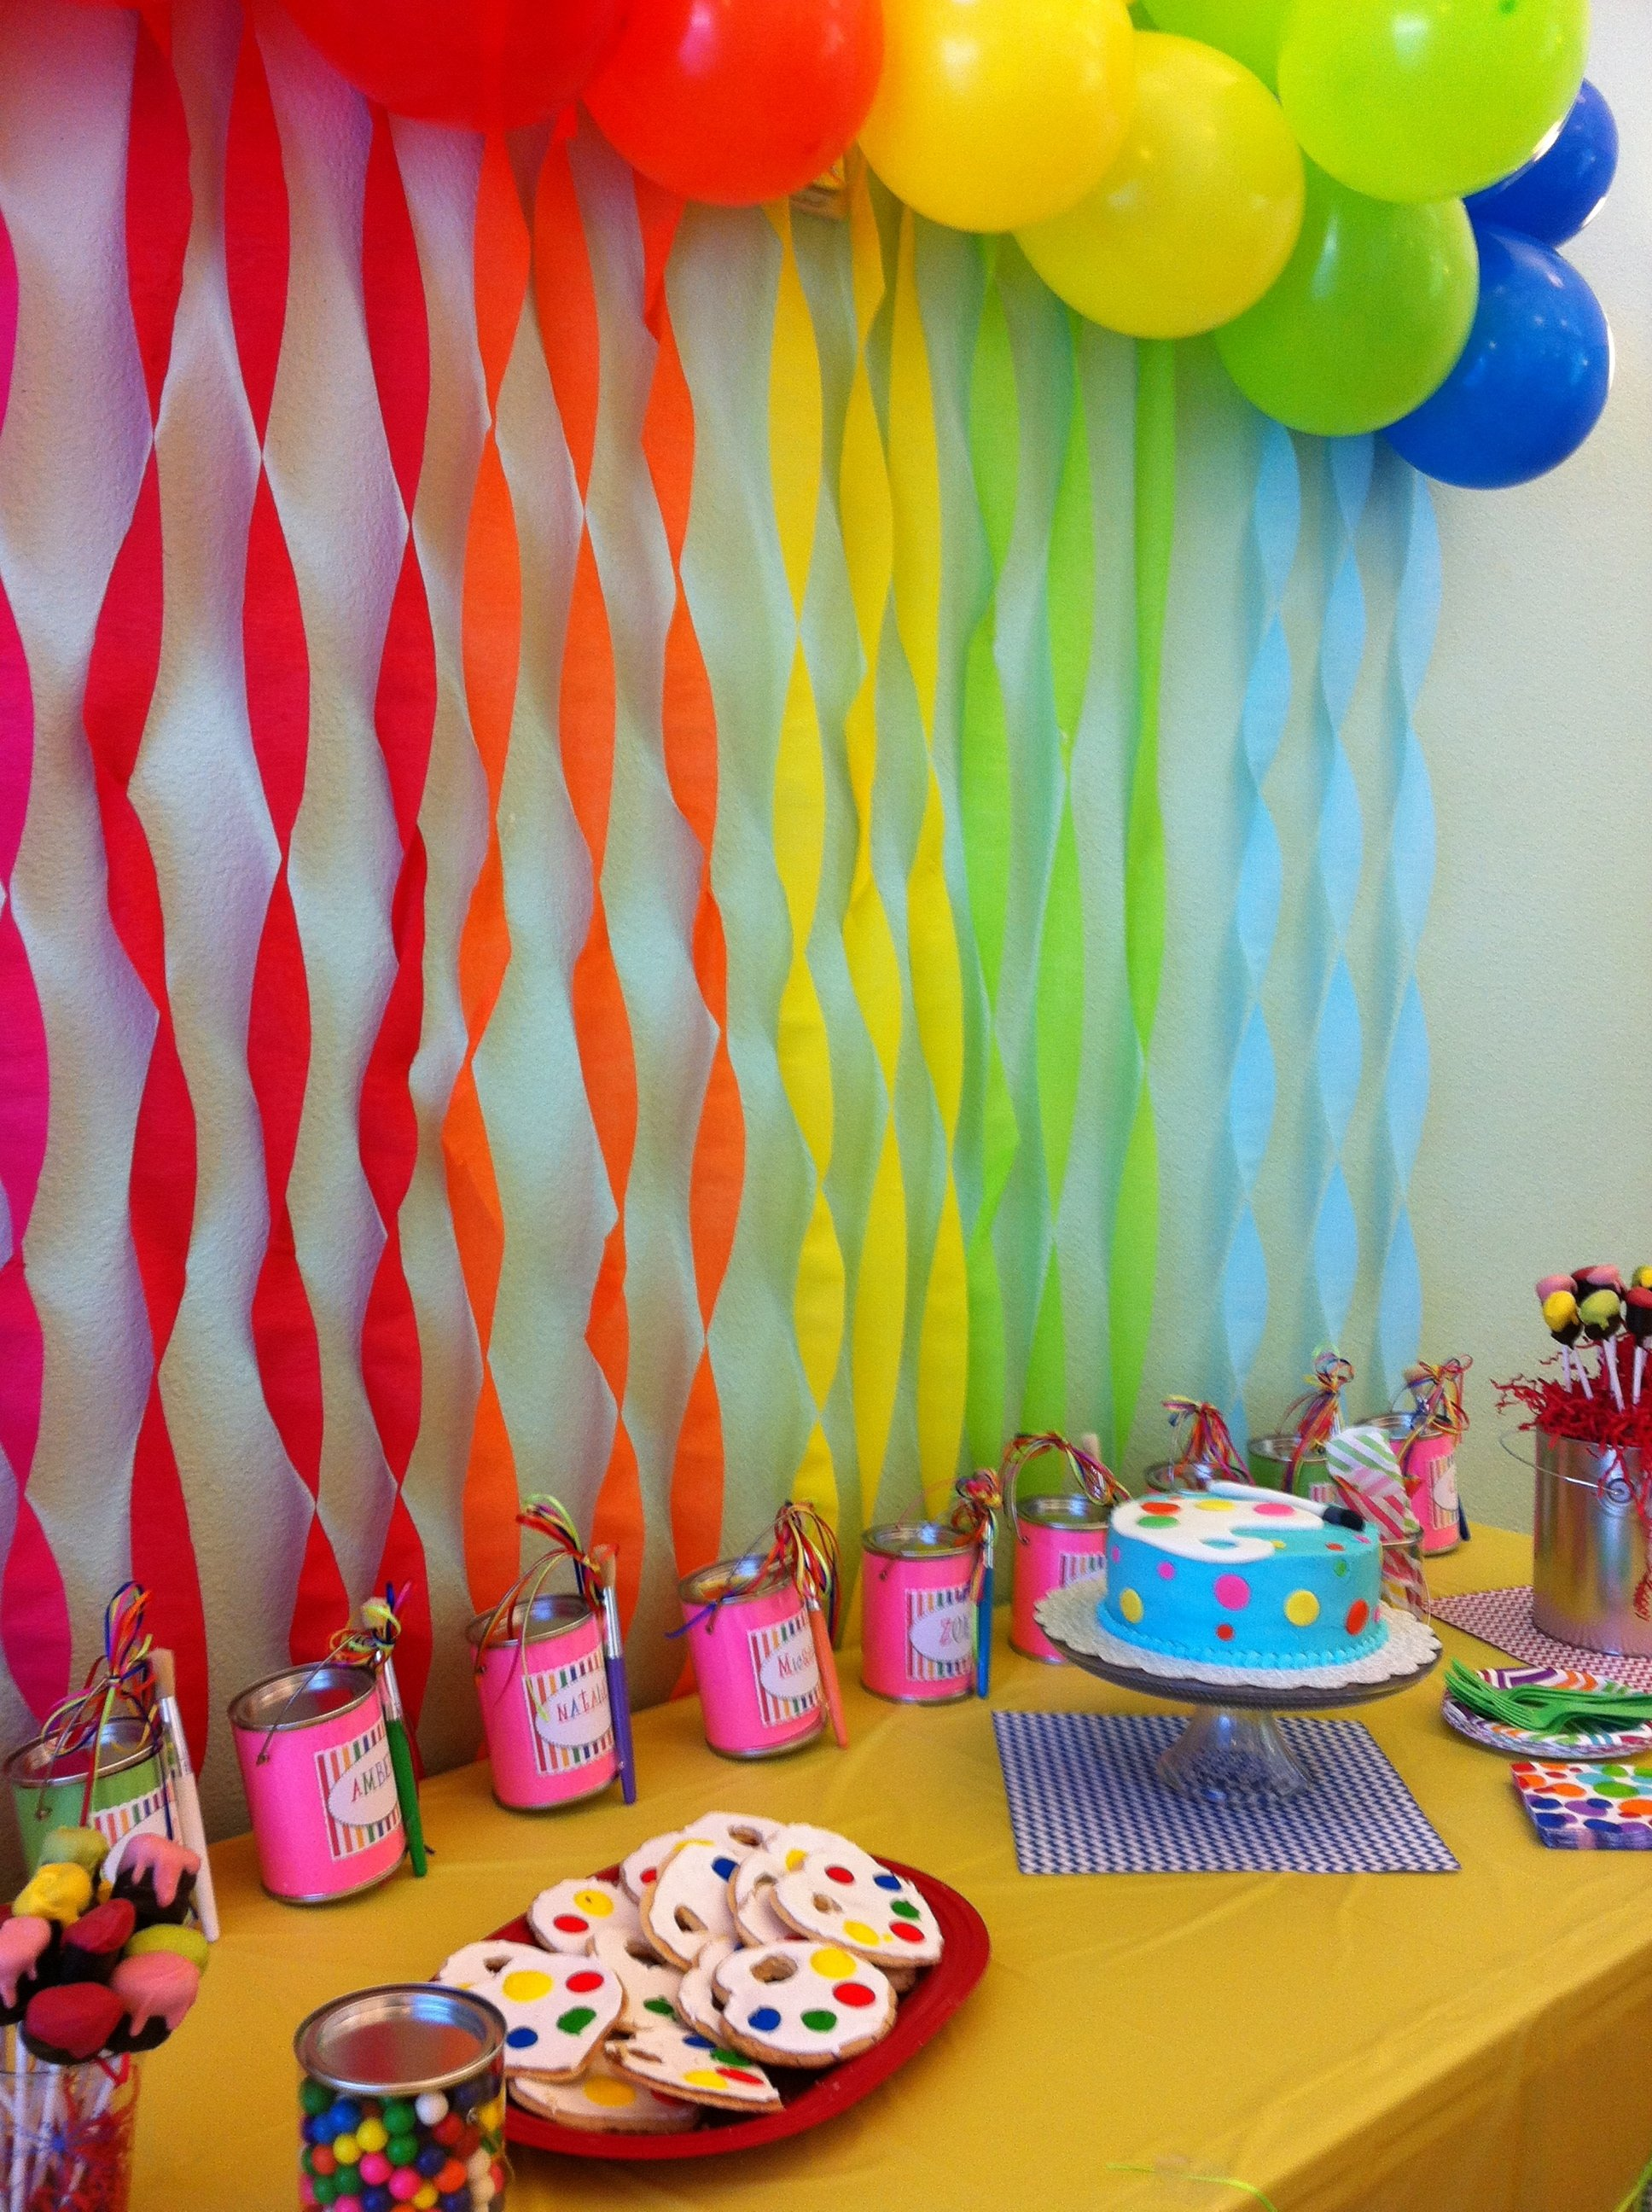 10 Lovable 9 Year Old Party Ideas 8 year old girl birthday art party art party pinterest art 29 2020